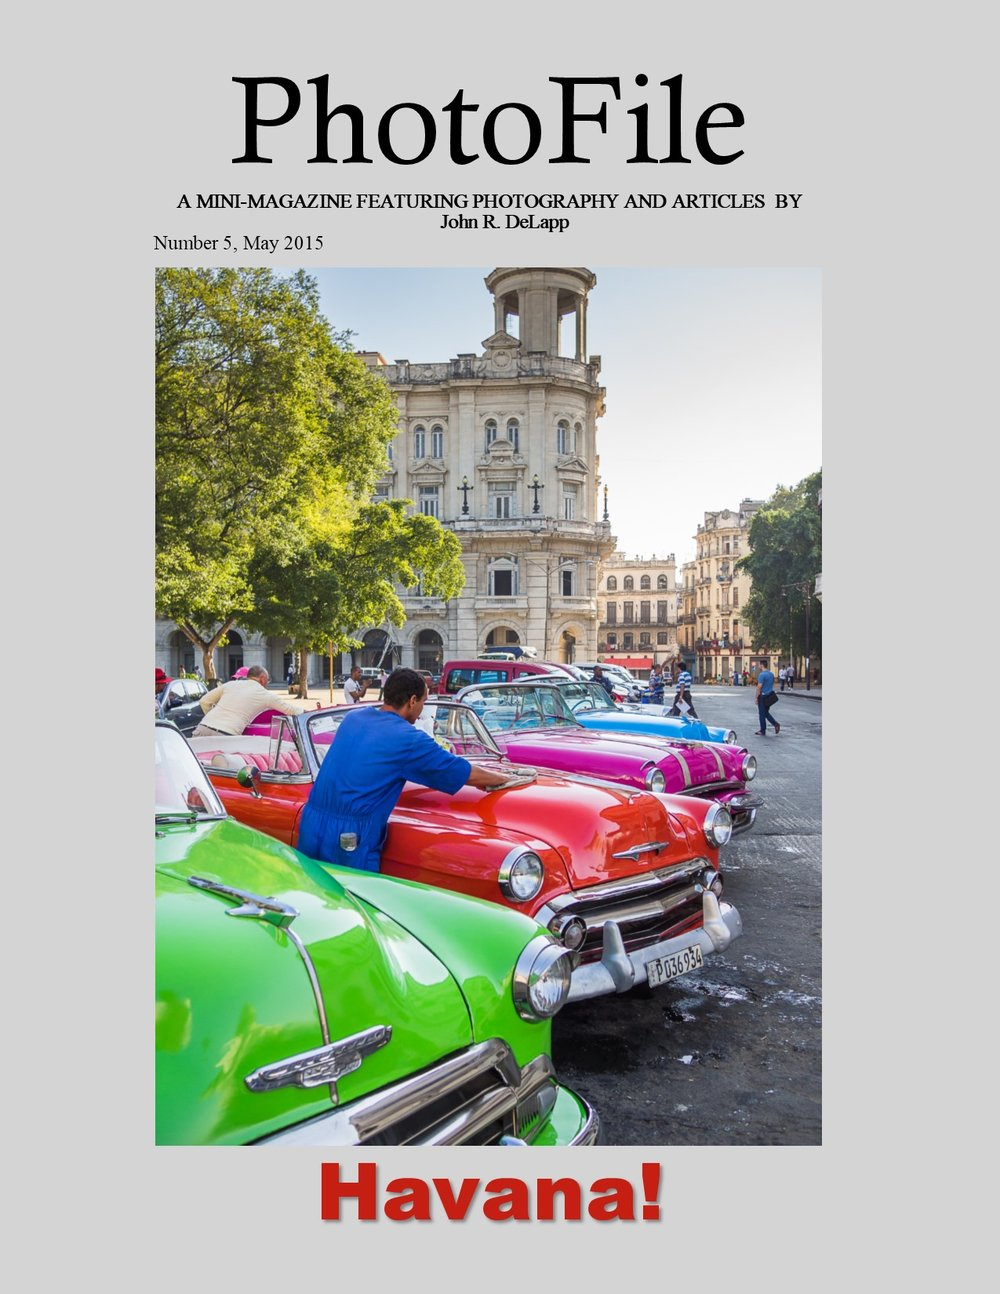 - Havana!Looking for information about travel and photo opportunities in Cuba? This magazine includes Cuban history, information about travel to Cuba, and many photos of Havana, its people, and culture from a week long stay in Havana in February 2015. Travel was arranged under a People to People Educational exchange for participation in a street photography workshop conducted by Peter Turnley.